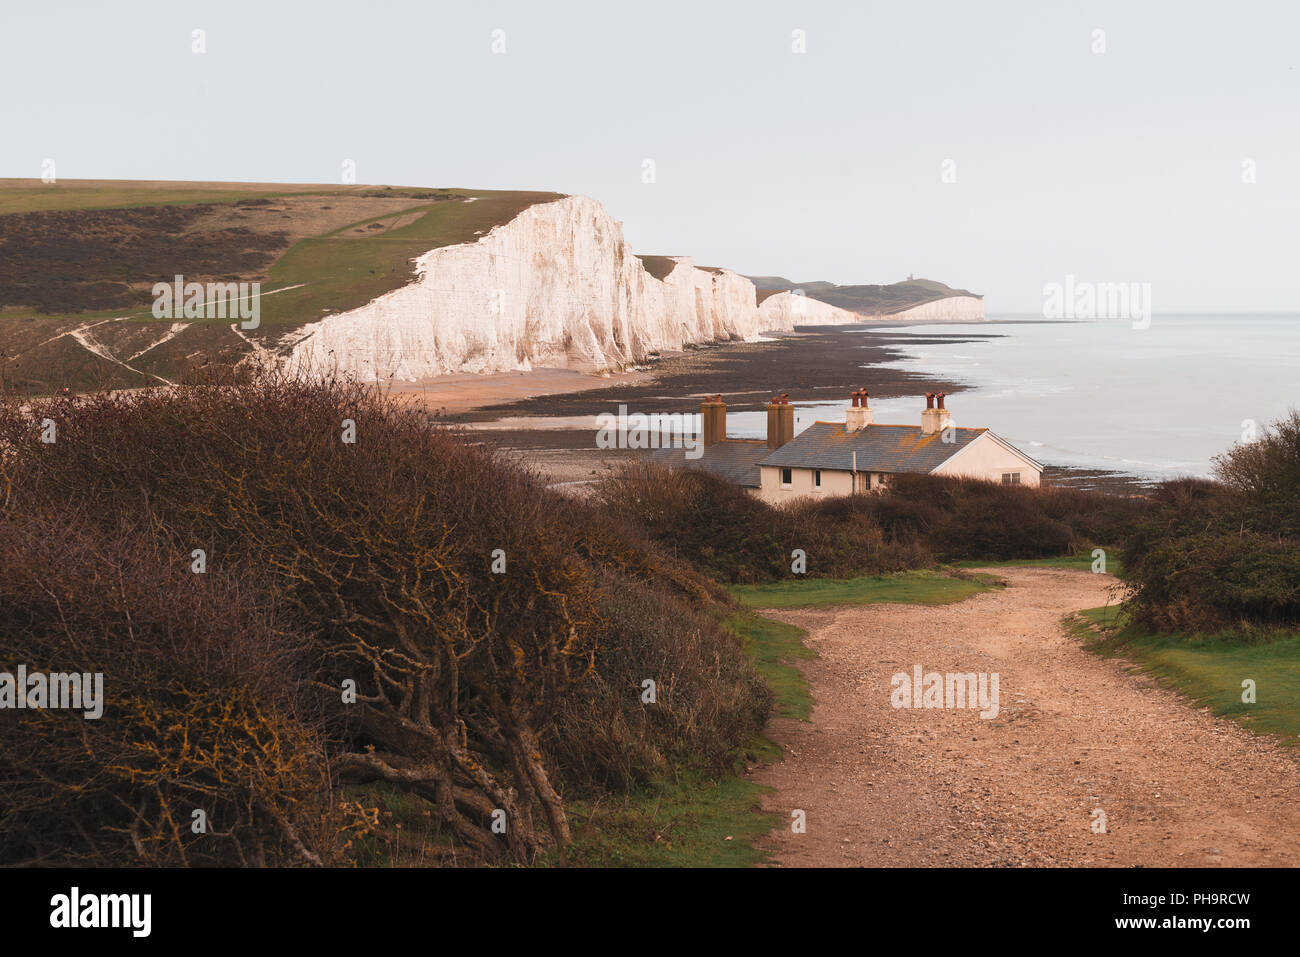 Seven Sisters famous cliffs and road to coast guard cottages, Eastbourne, East Sussex, England - Stock Image